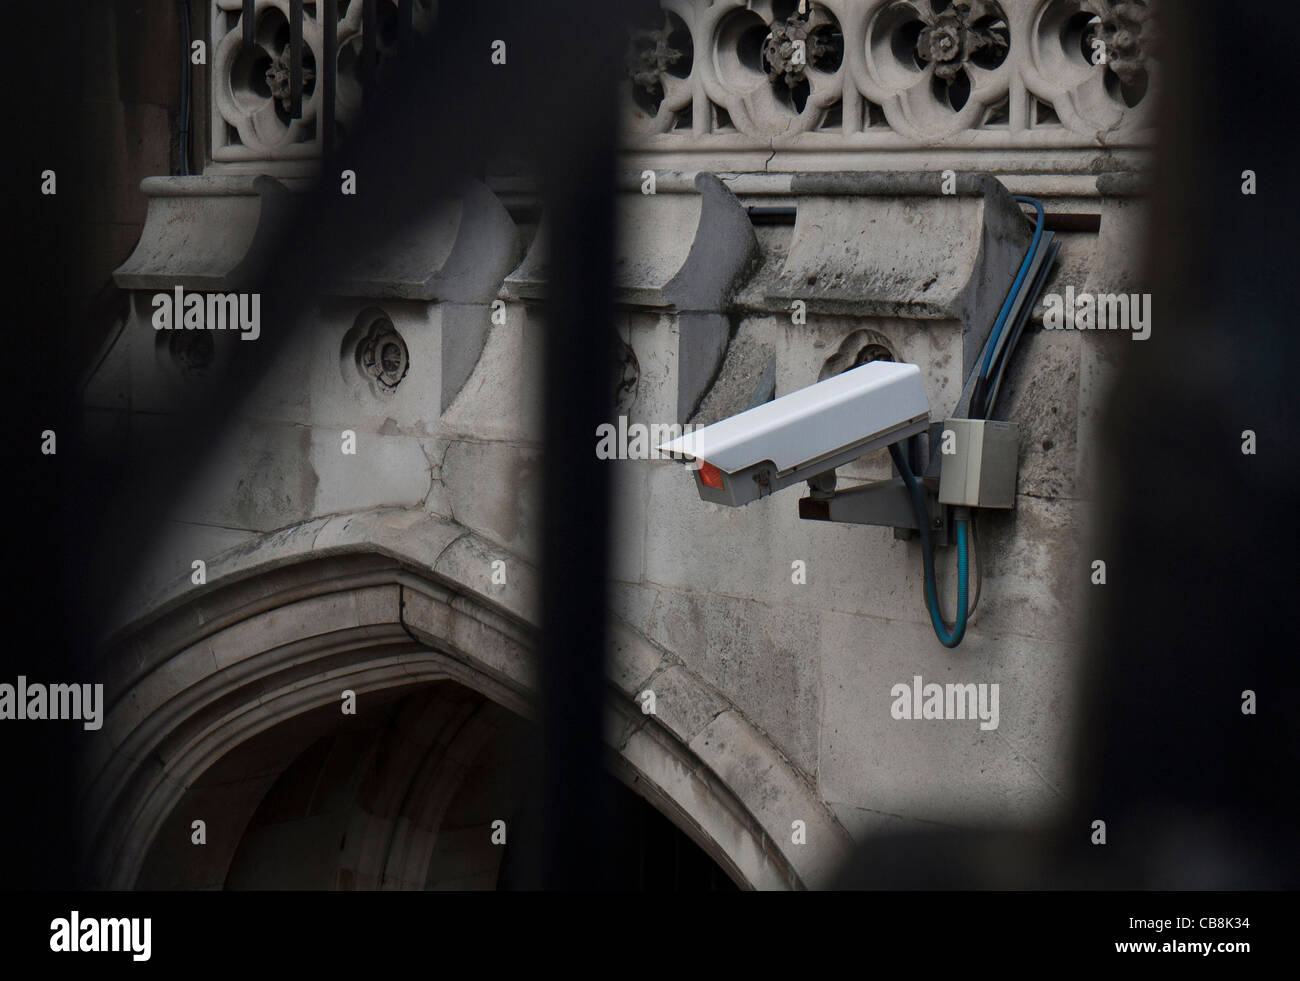 CCTV security camera attached to historic building in London - Stock Image